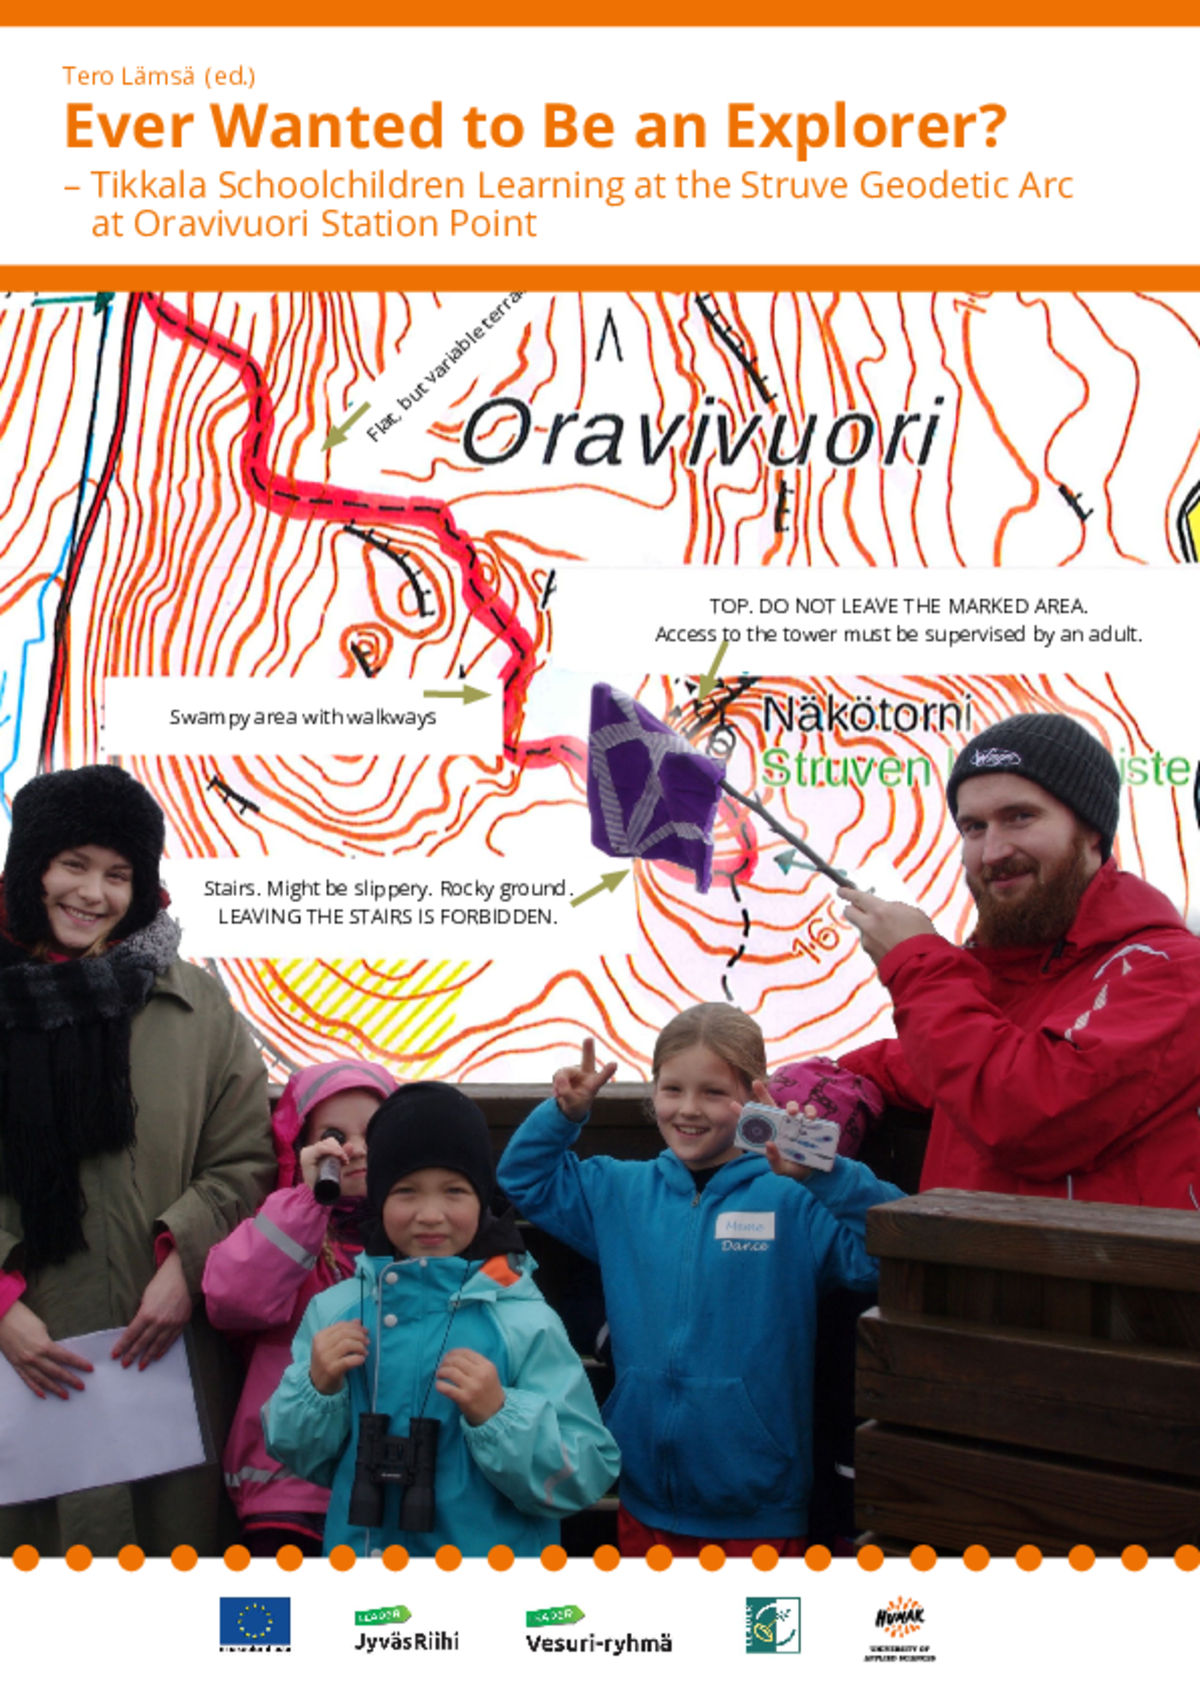 Ever Wanted to Be an Explorer? – Tikkala Schoolchildren Learning at the Struve Geodetic Arc at Oravivuori Station Point